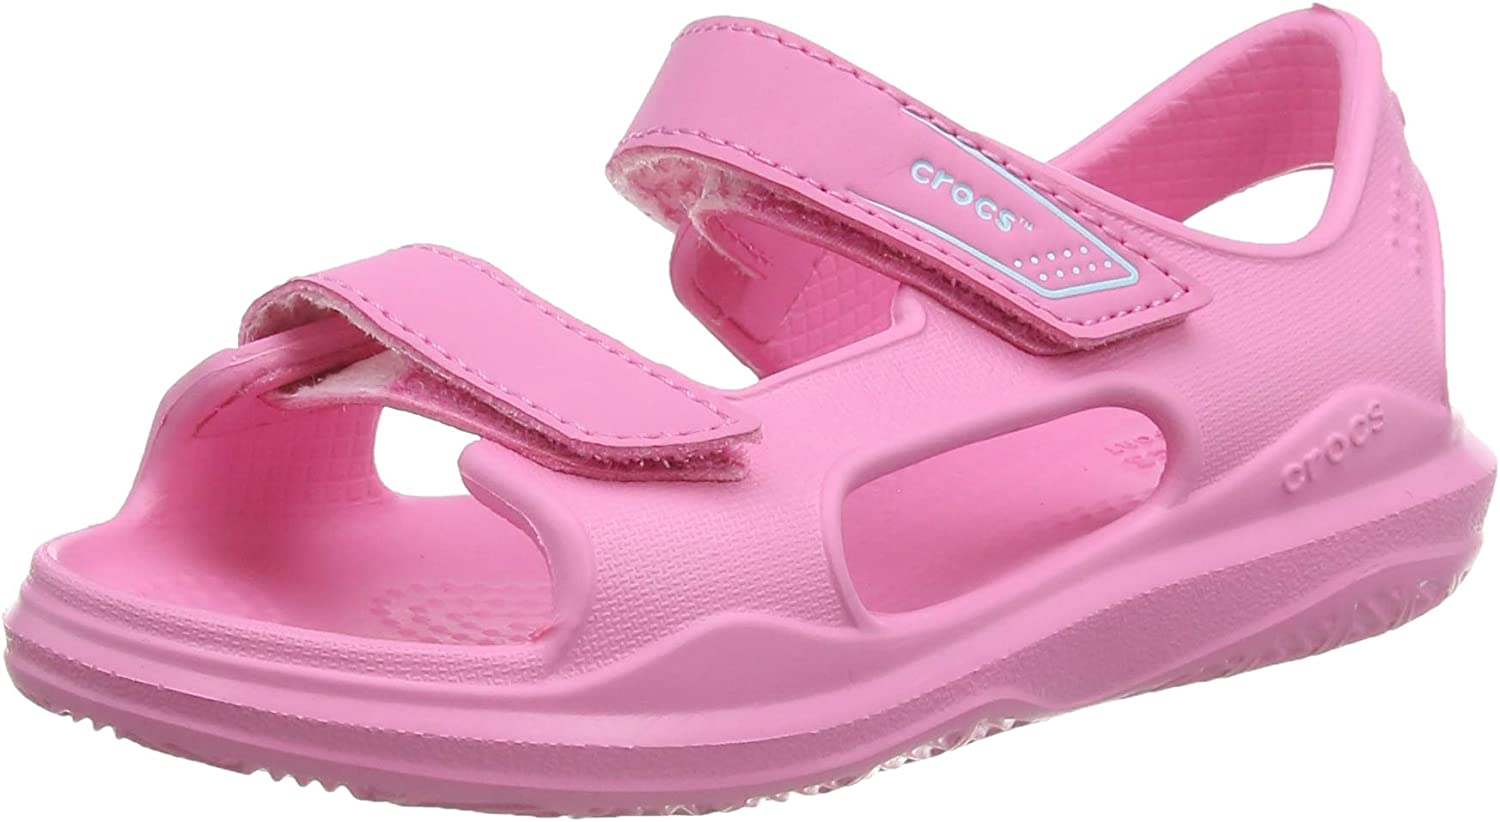 Water Shoes for Boys Girls Toddlers Crocs Kids Swiftwater Expedition Sandal